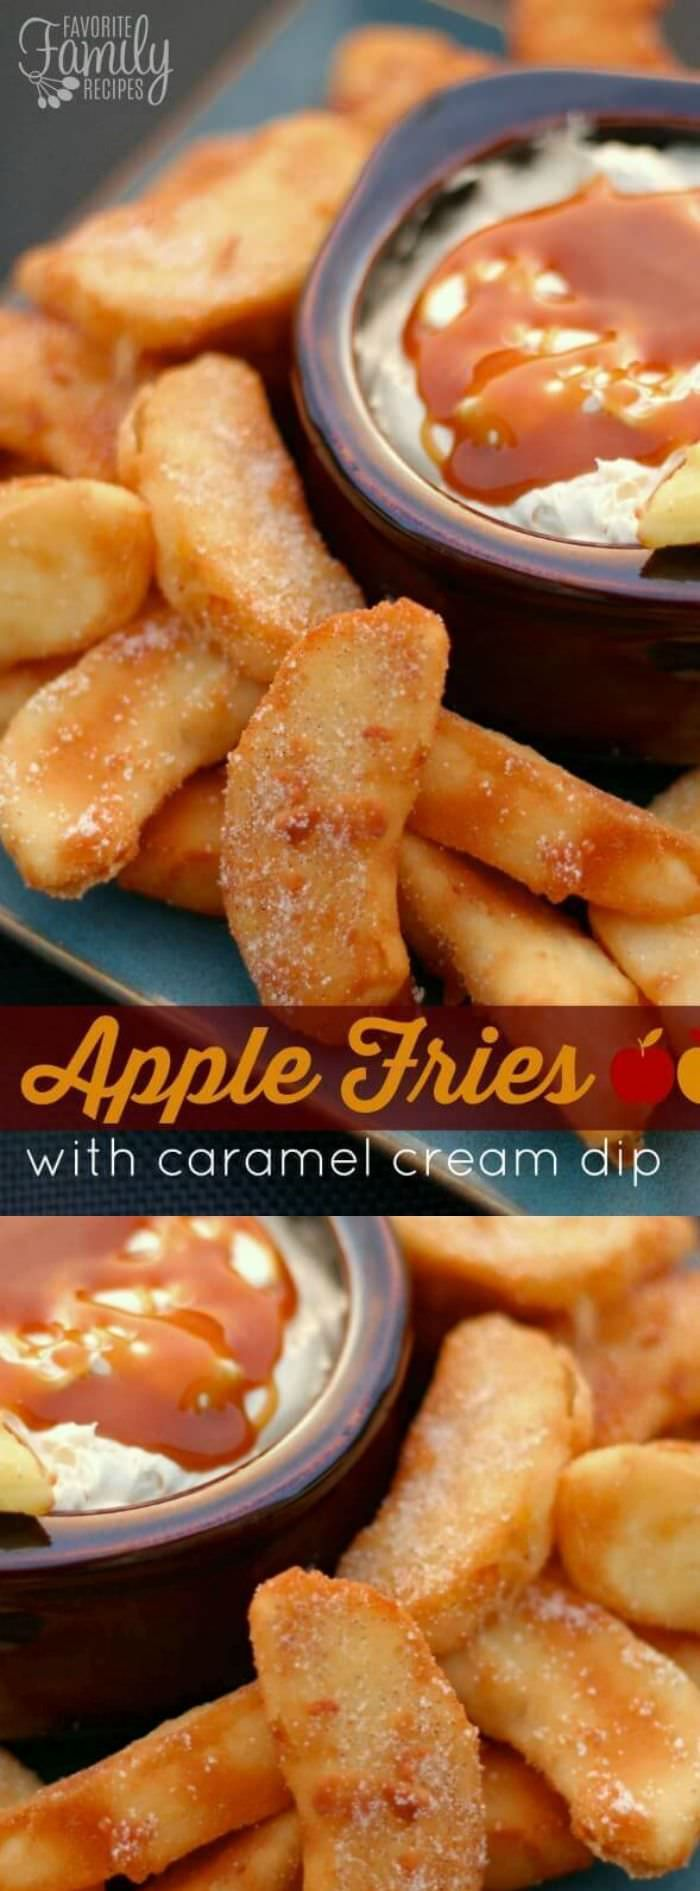 Lightly battered apple slices, fried and sprinkled with cinnamon and sugar-- this apple fries with caramel cream dip recipe is amazing!